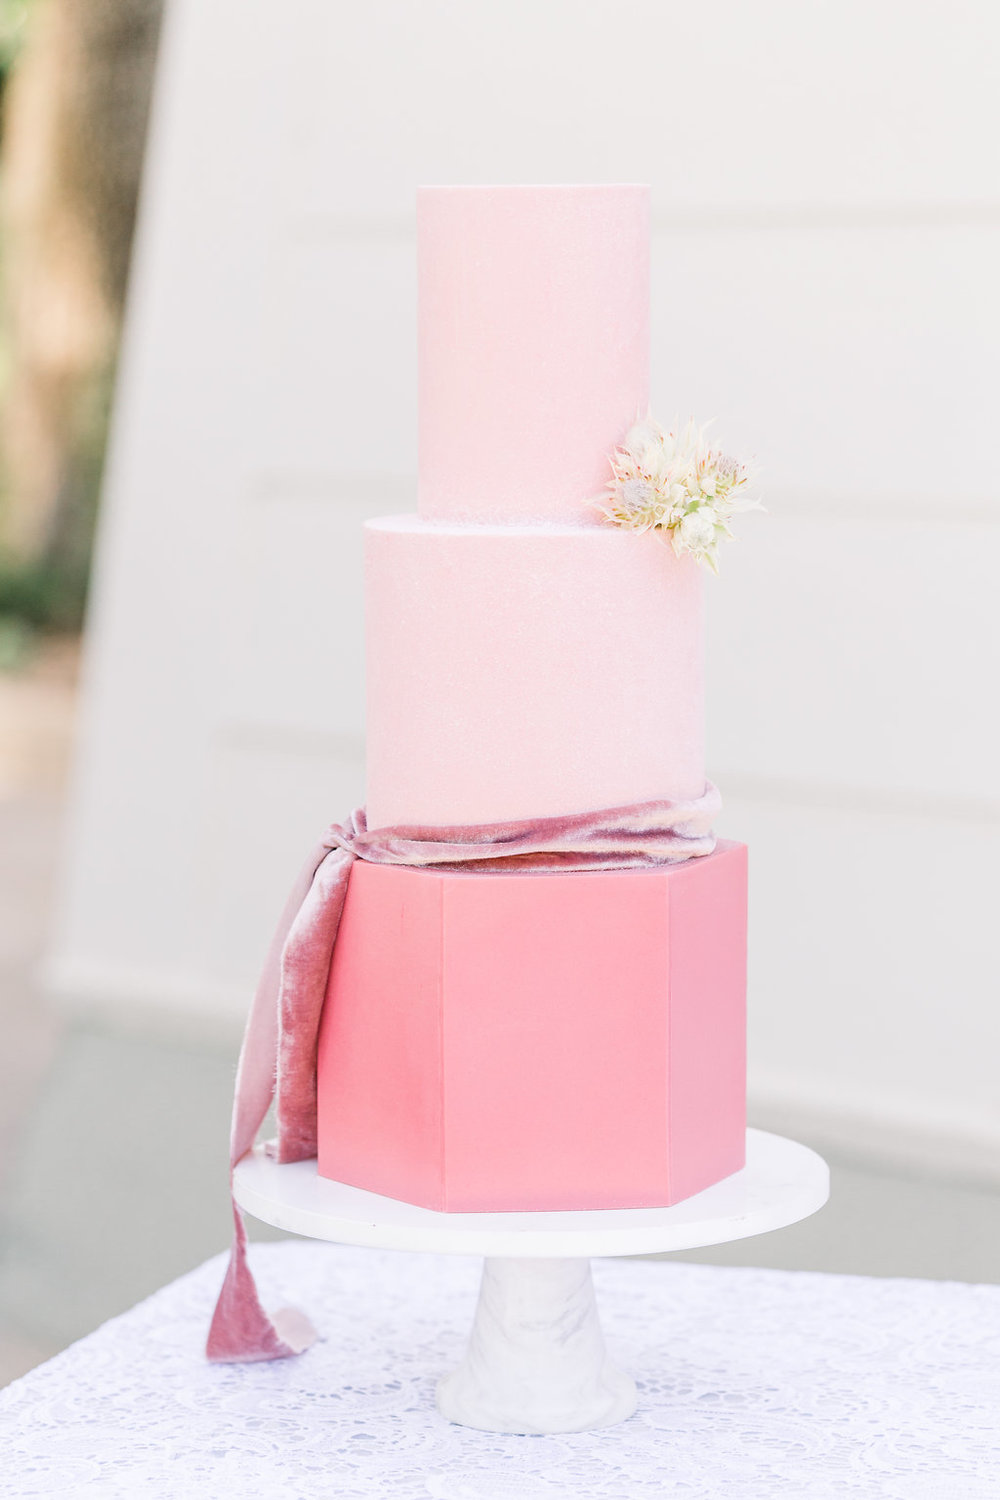 Pink wedding cake on white cake stand and white lace table linen